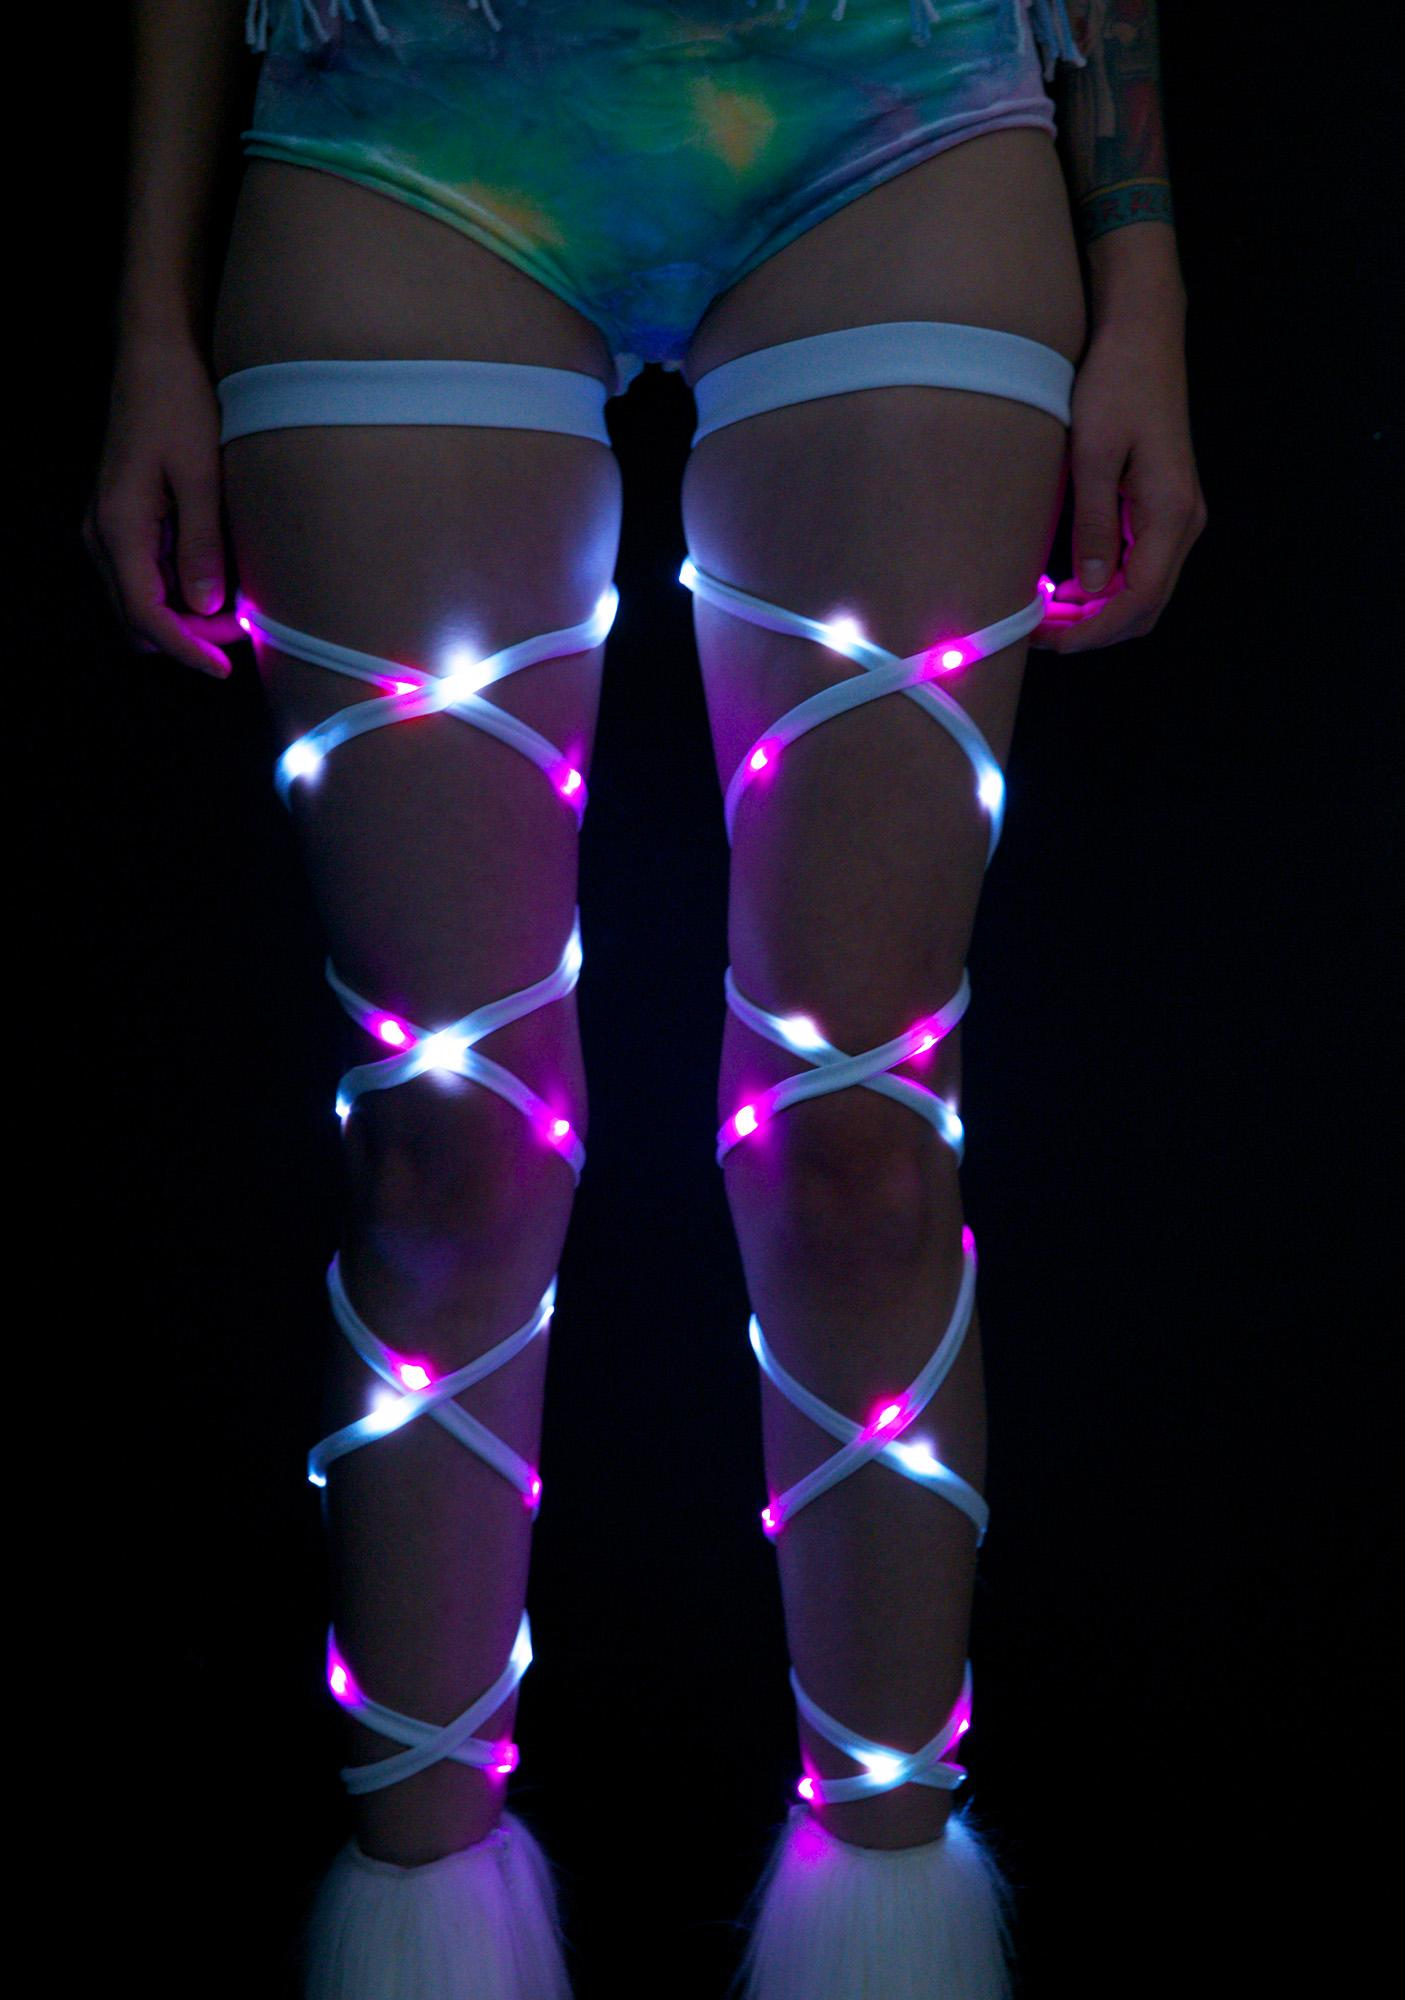 J Valentine Vivid Vixen Light-Up Leg Wraps